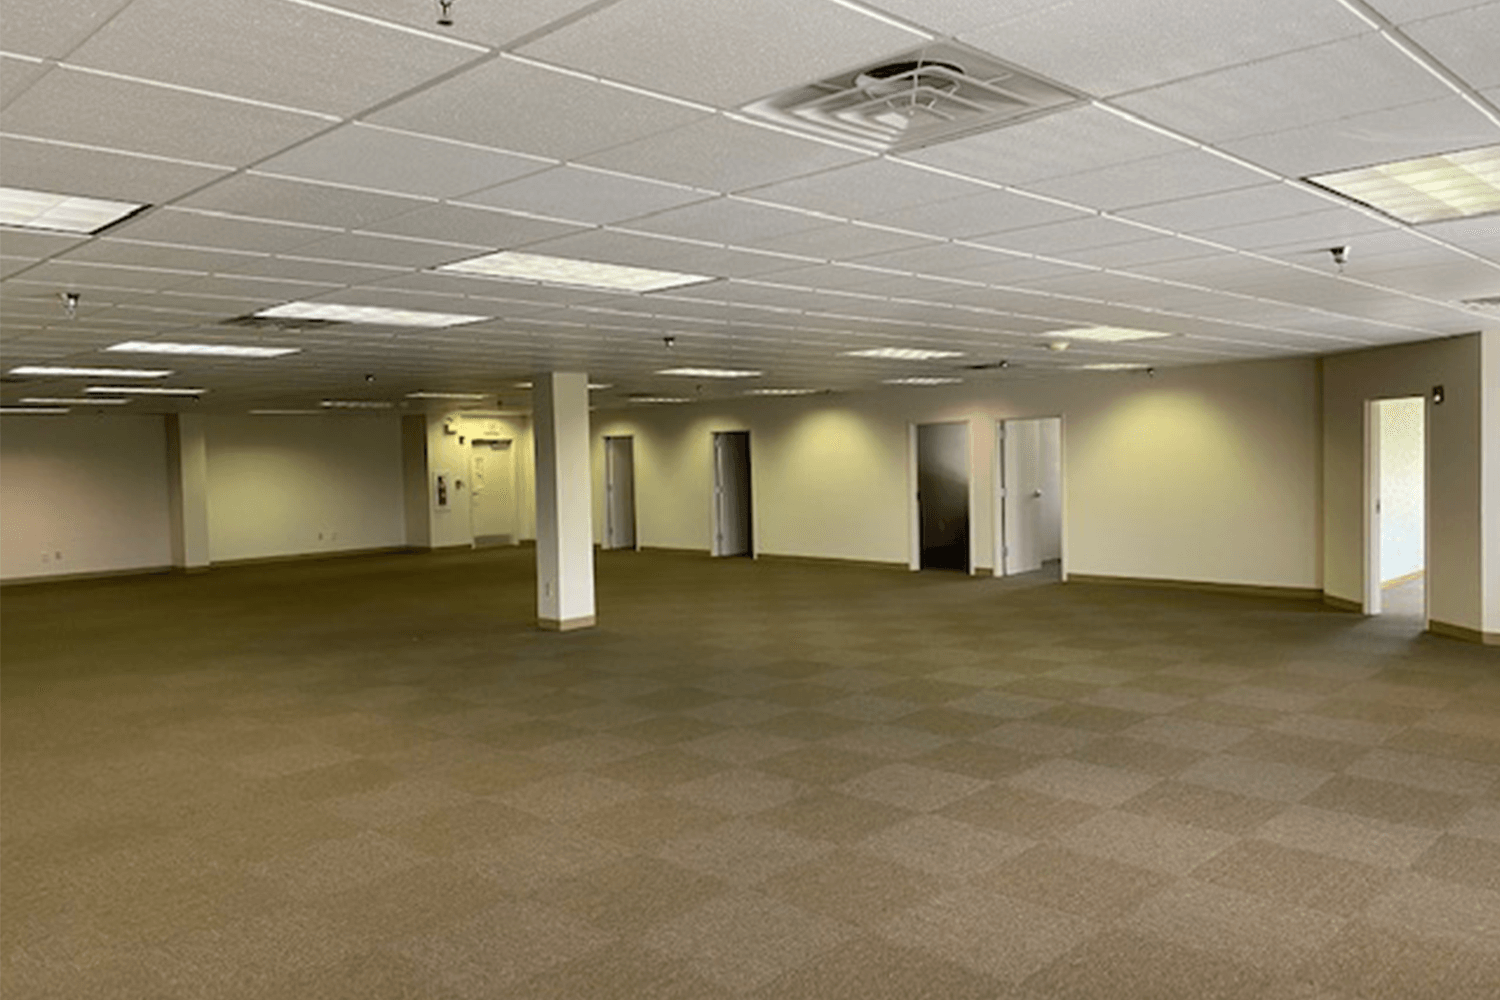 large empty room with tan carpet and white walls